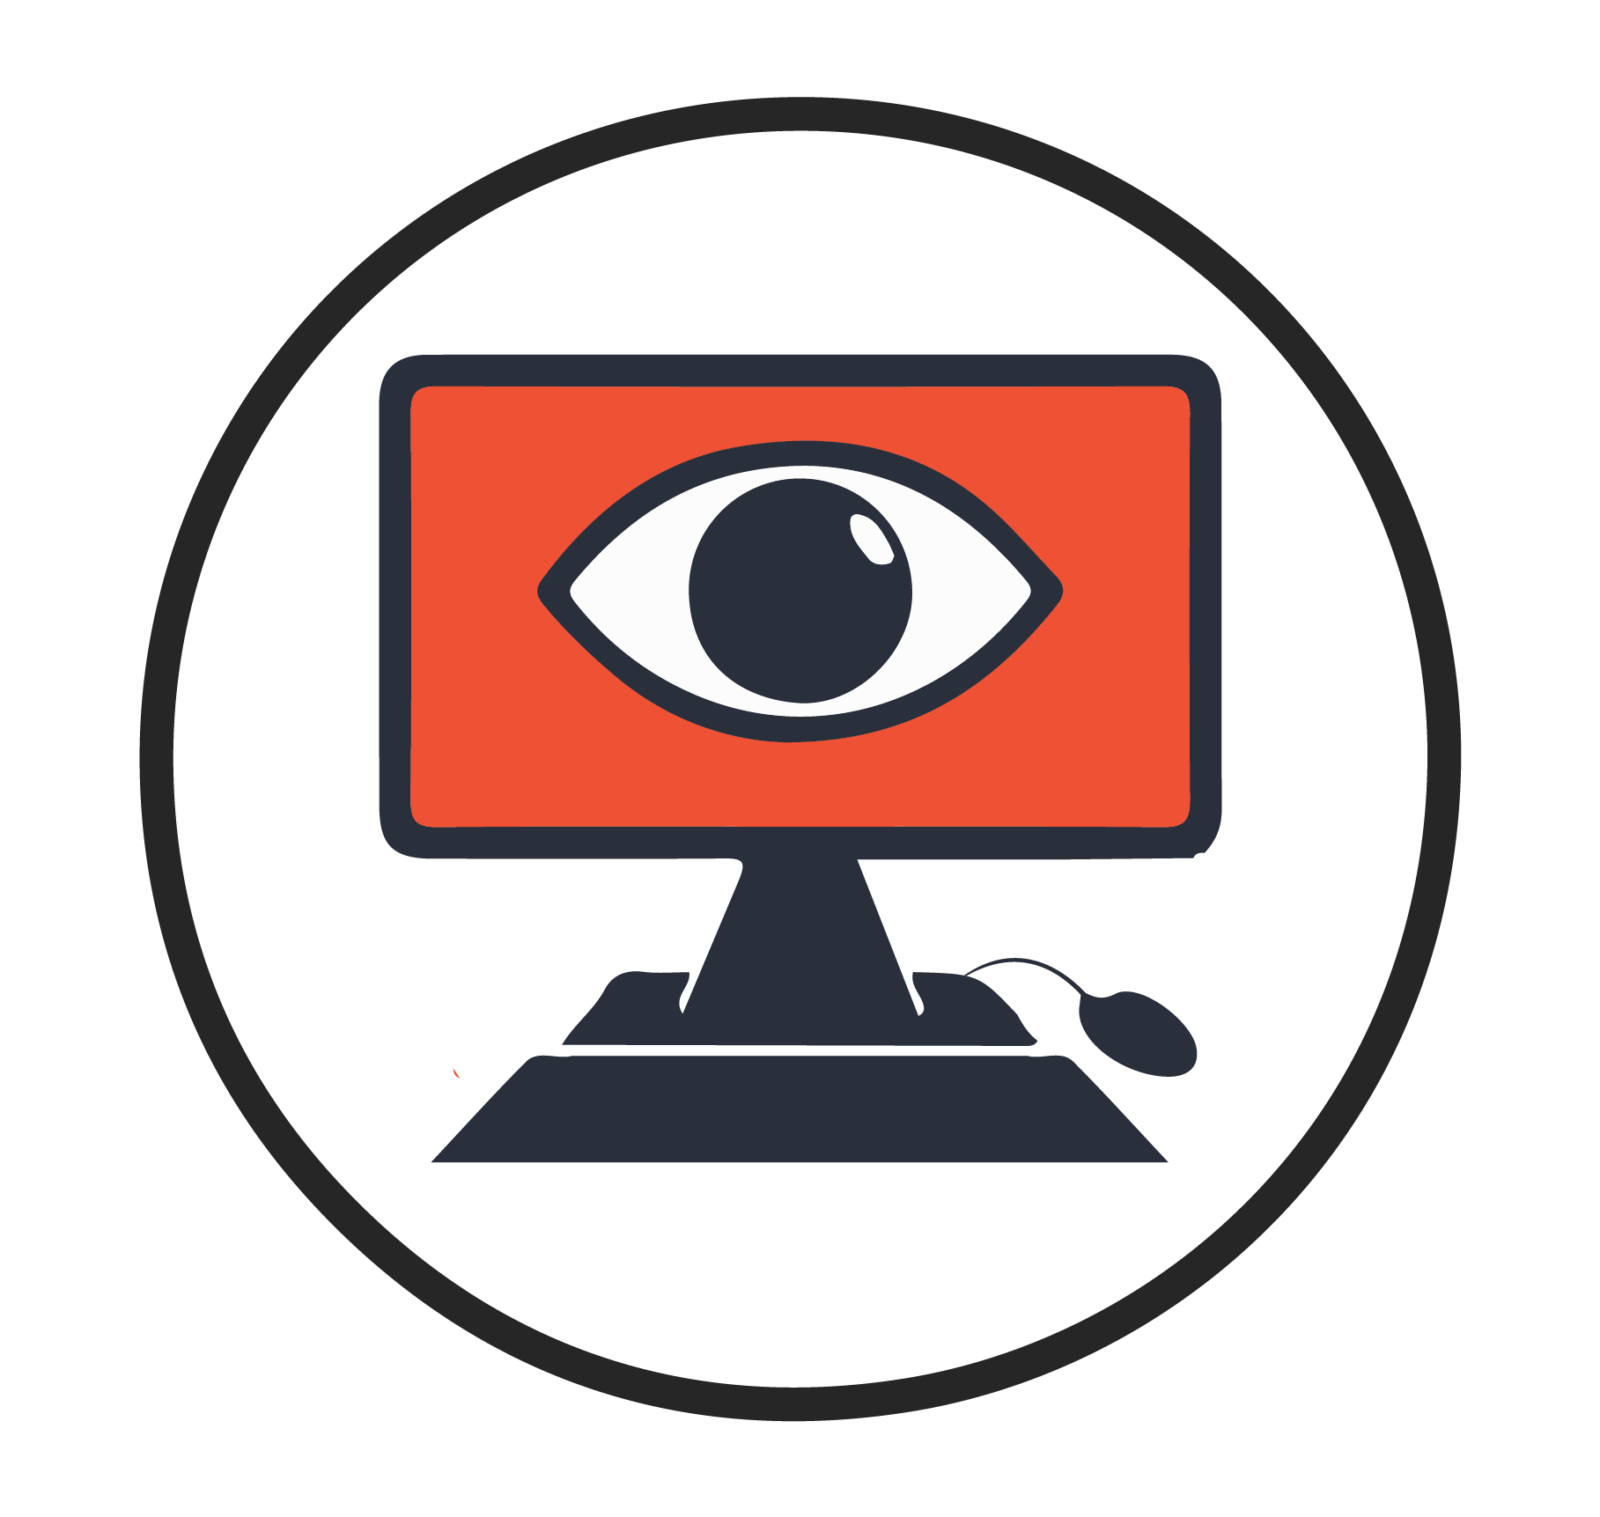 Machine Learning Solutions computer vision